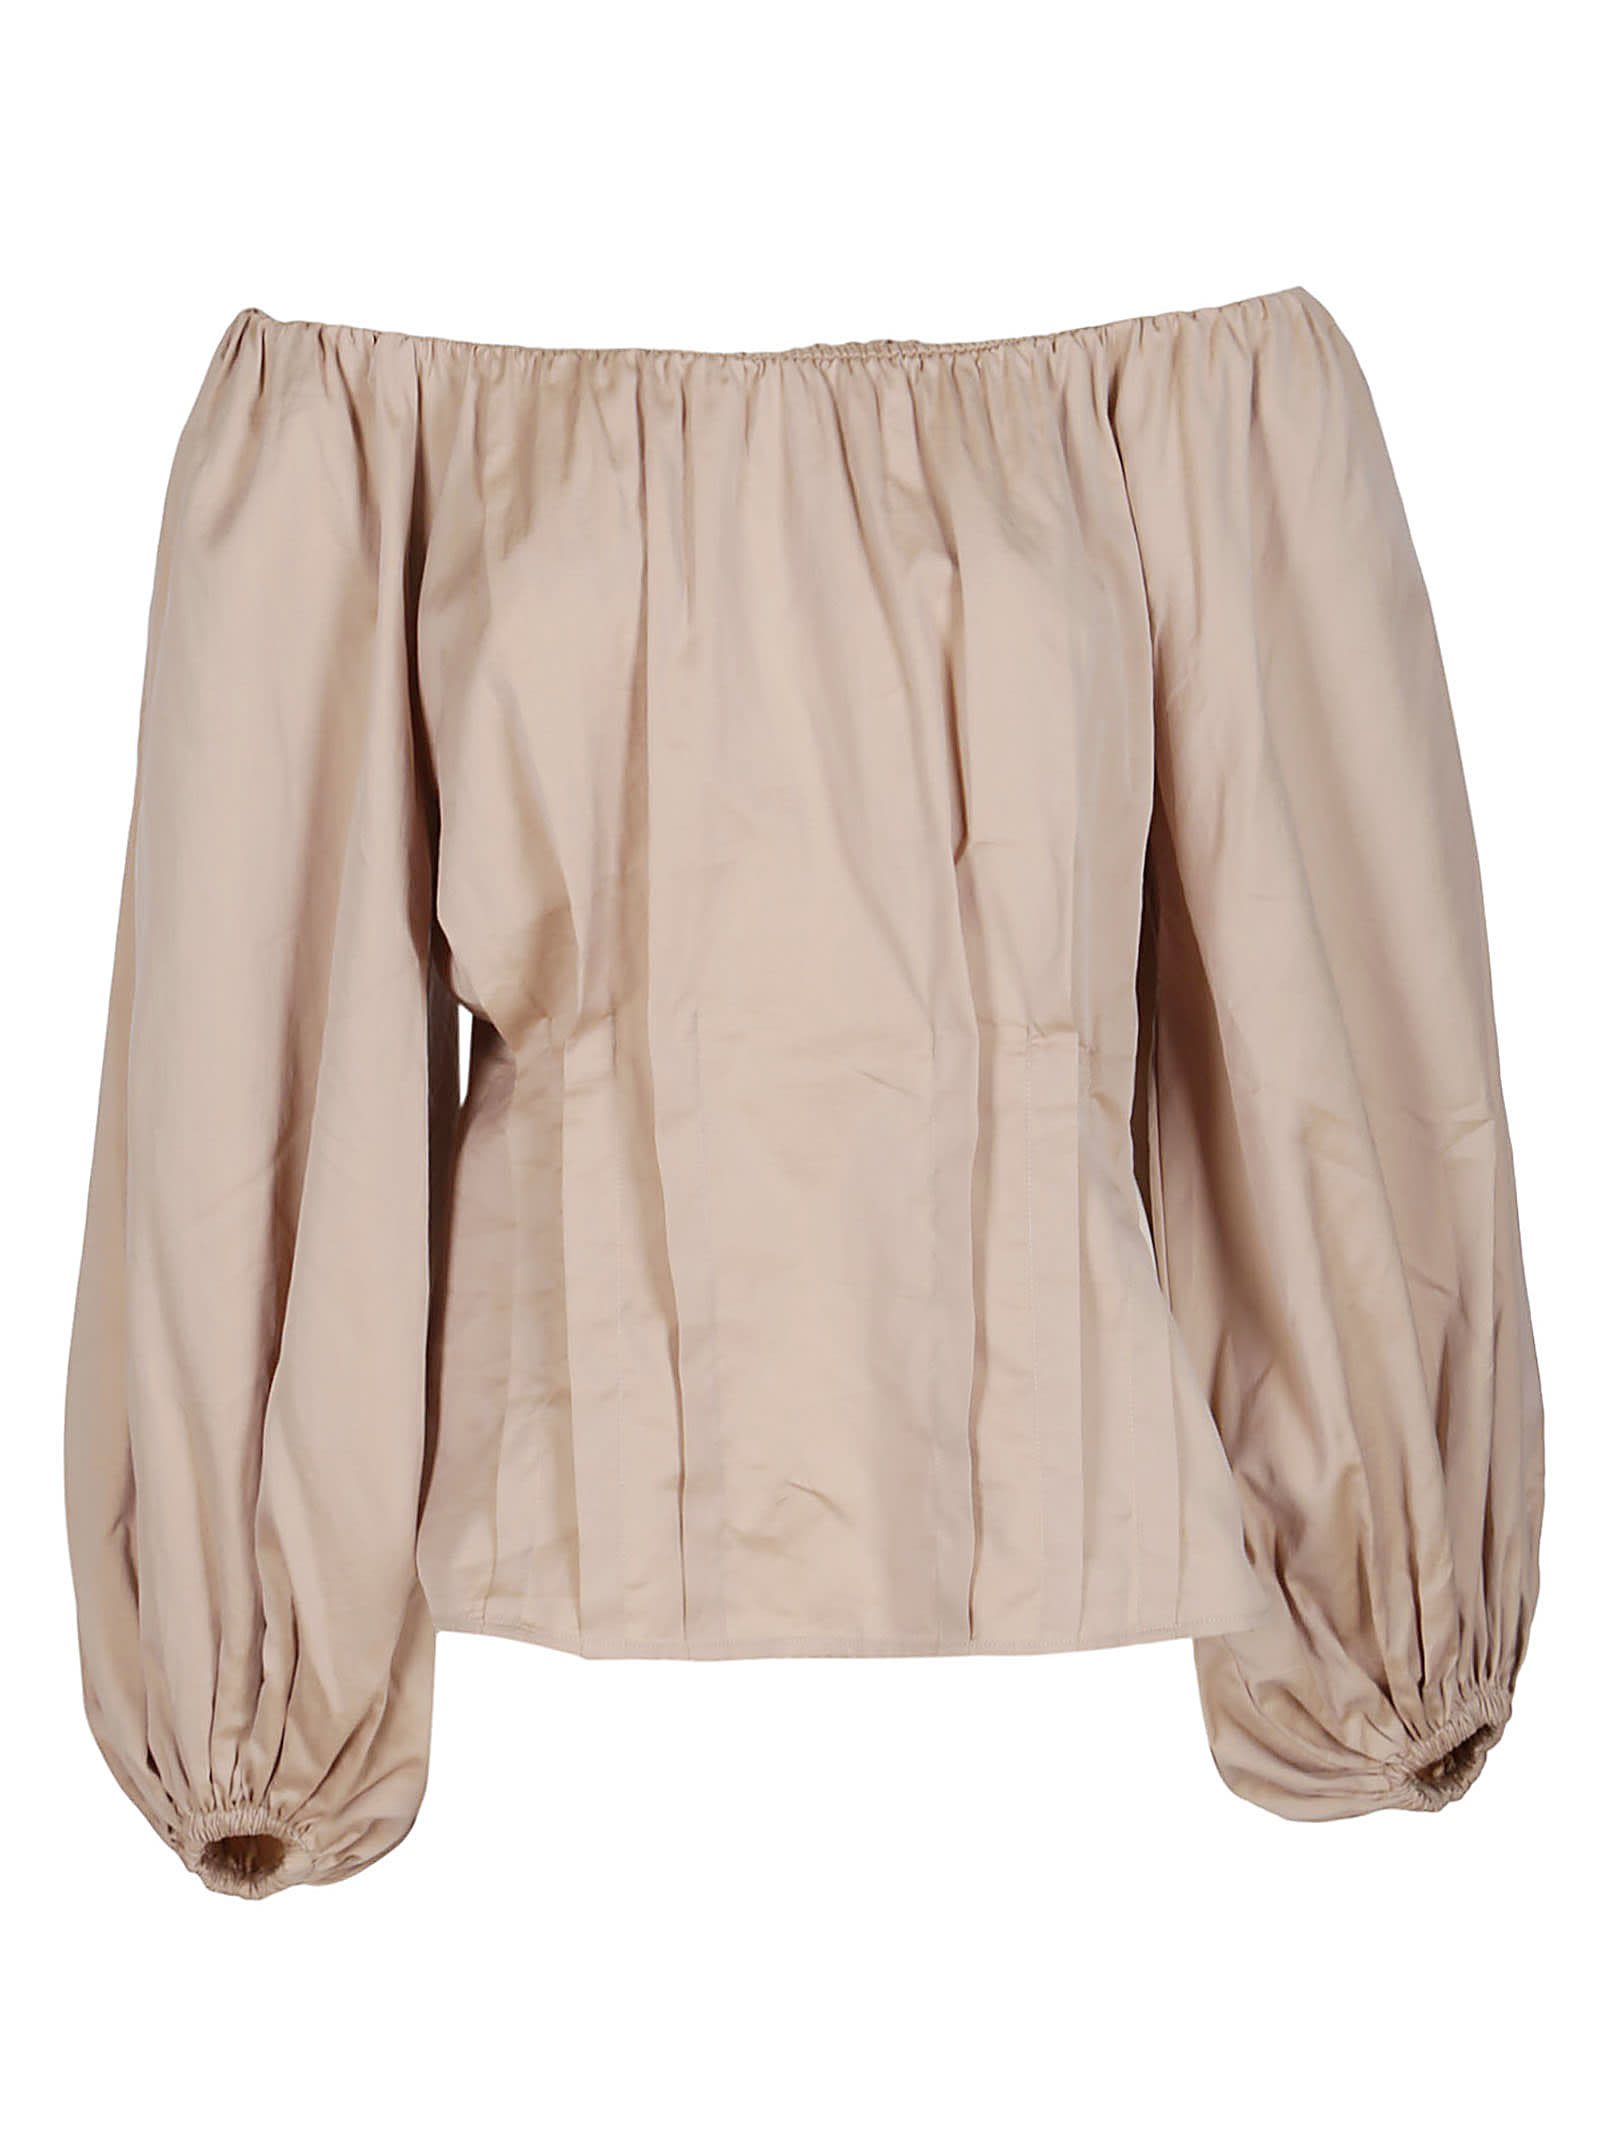 Federica Tosi BROWN COTTON BLOUSE